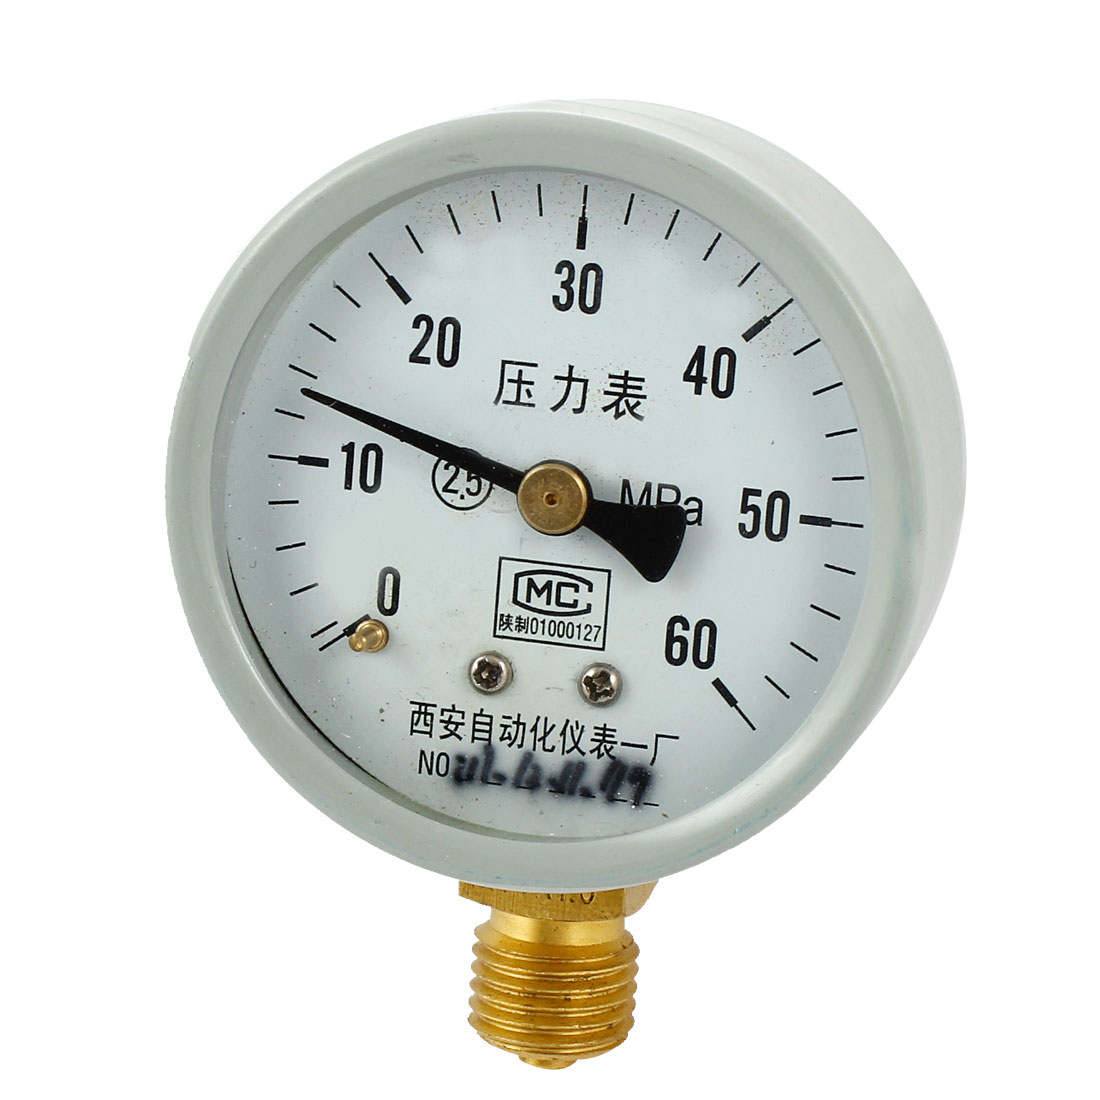 1/4PT Male Threaded 0-60Mpa Pneumatic Air Pressure Measuring Gauge Light Gray